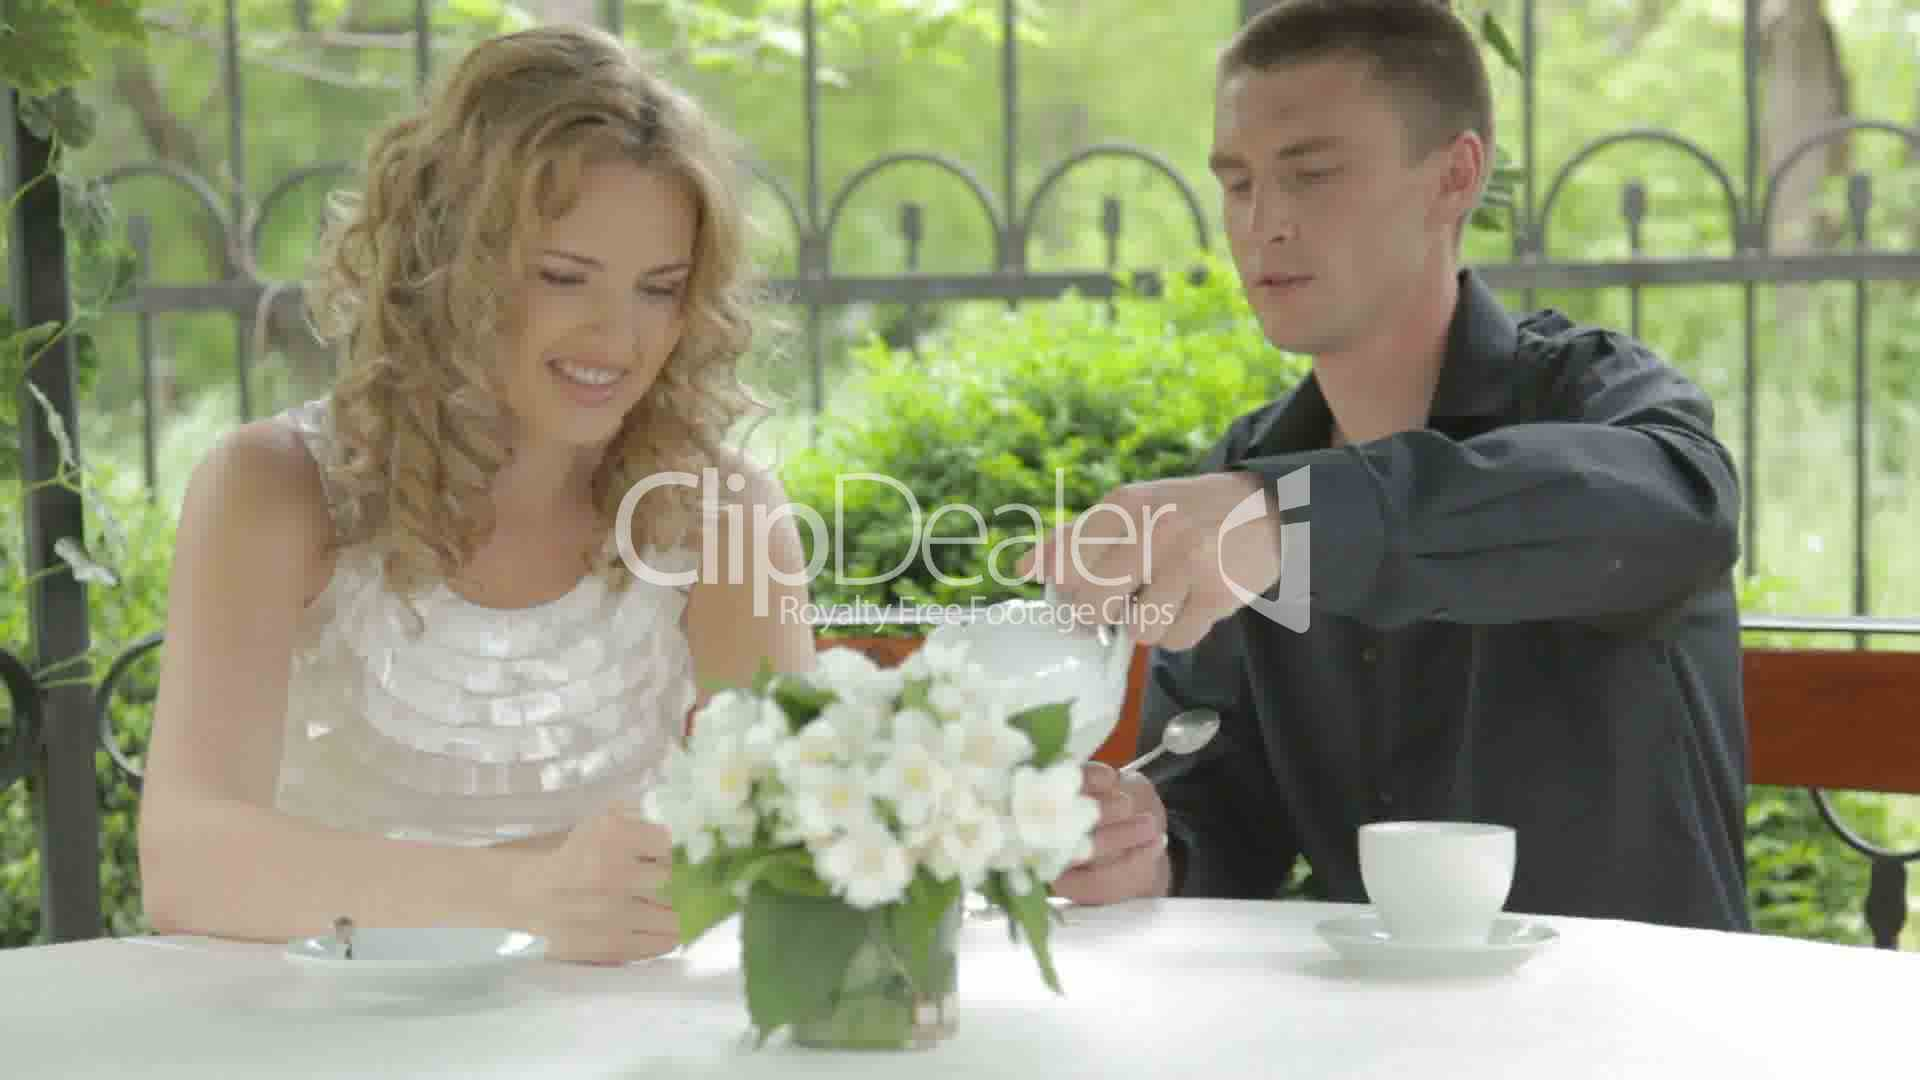 dating romance videos Romance, dating, anniversaries take movie night to the next level, take a peek at our list of great romance movies read our reviews to pick just the right movie for a romantic atmosphere to movie.